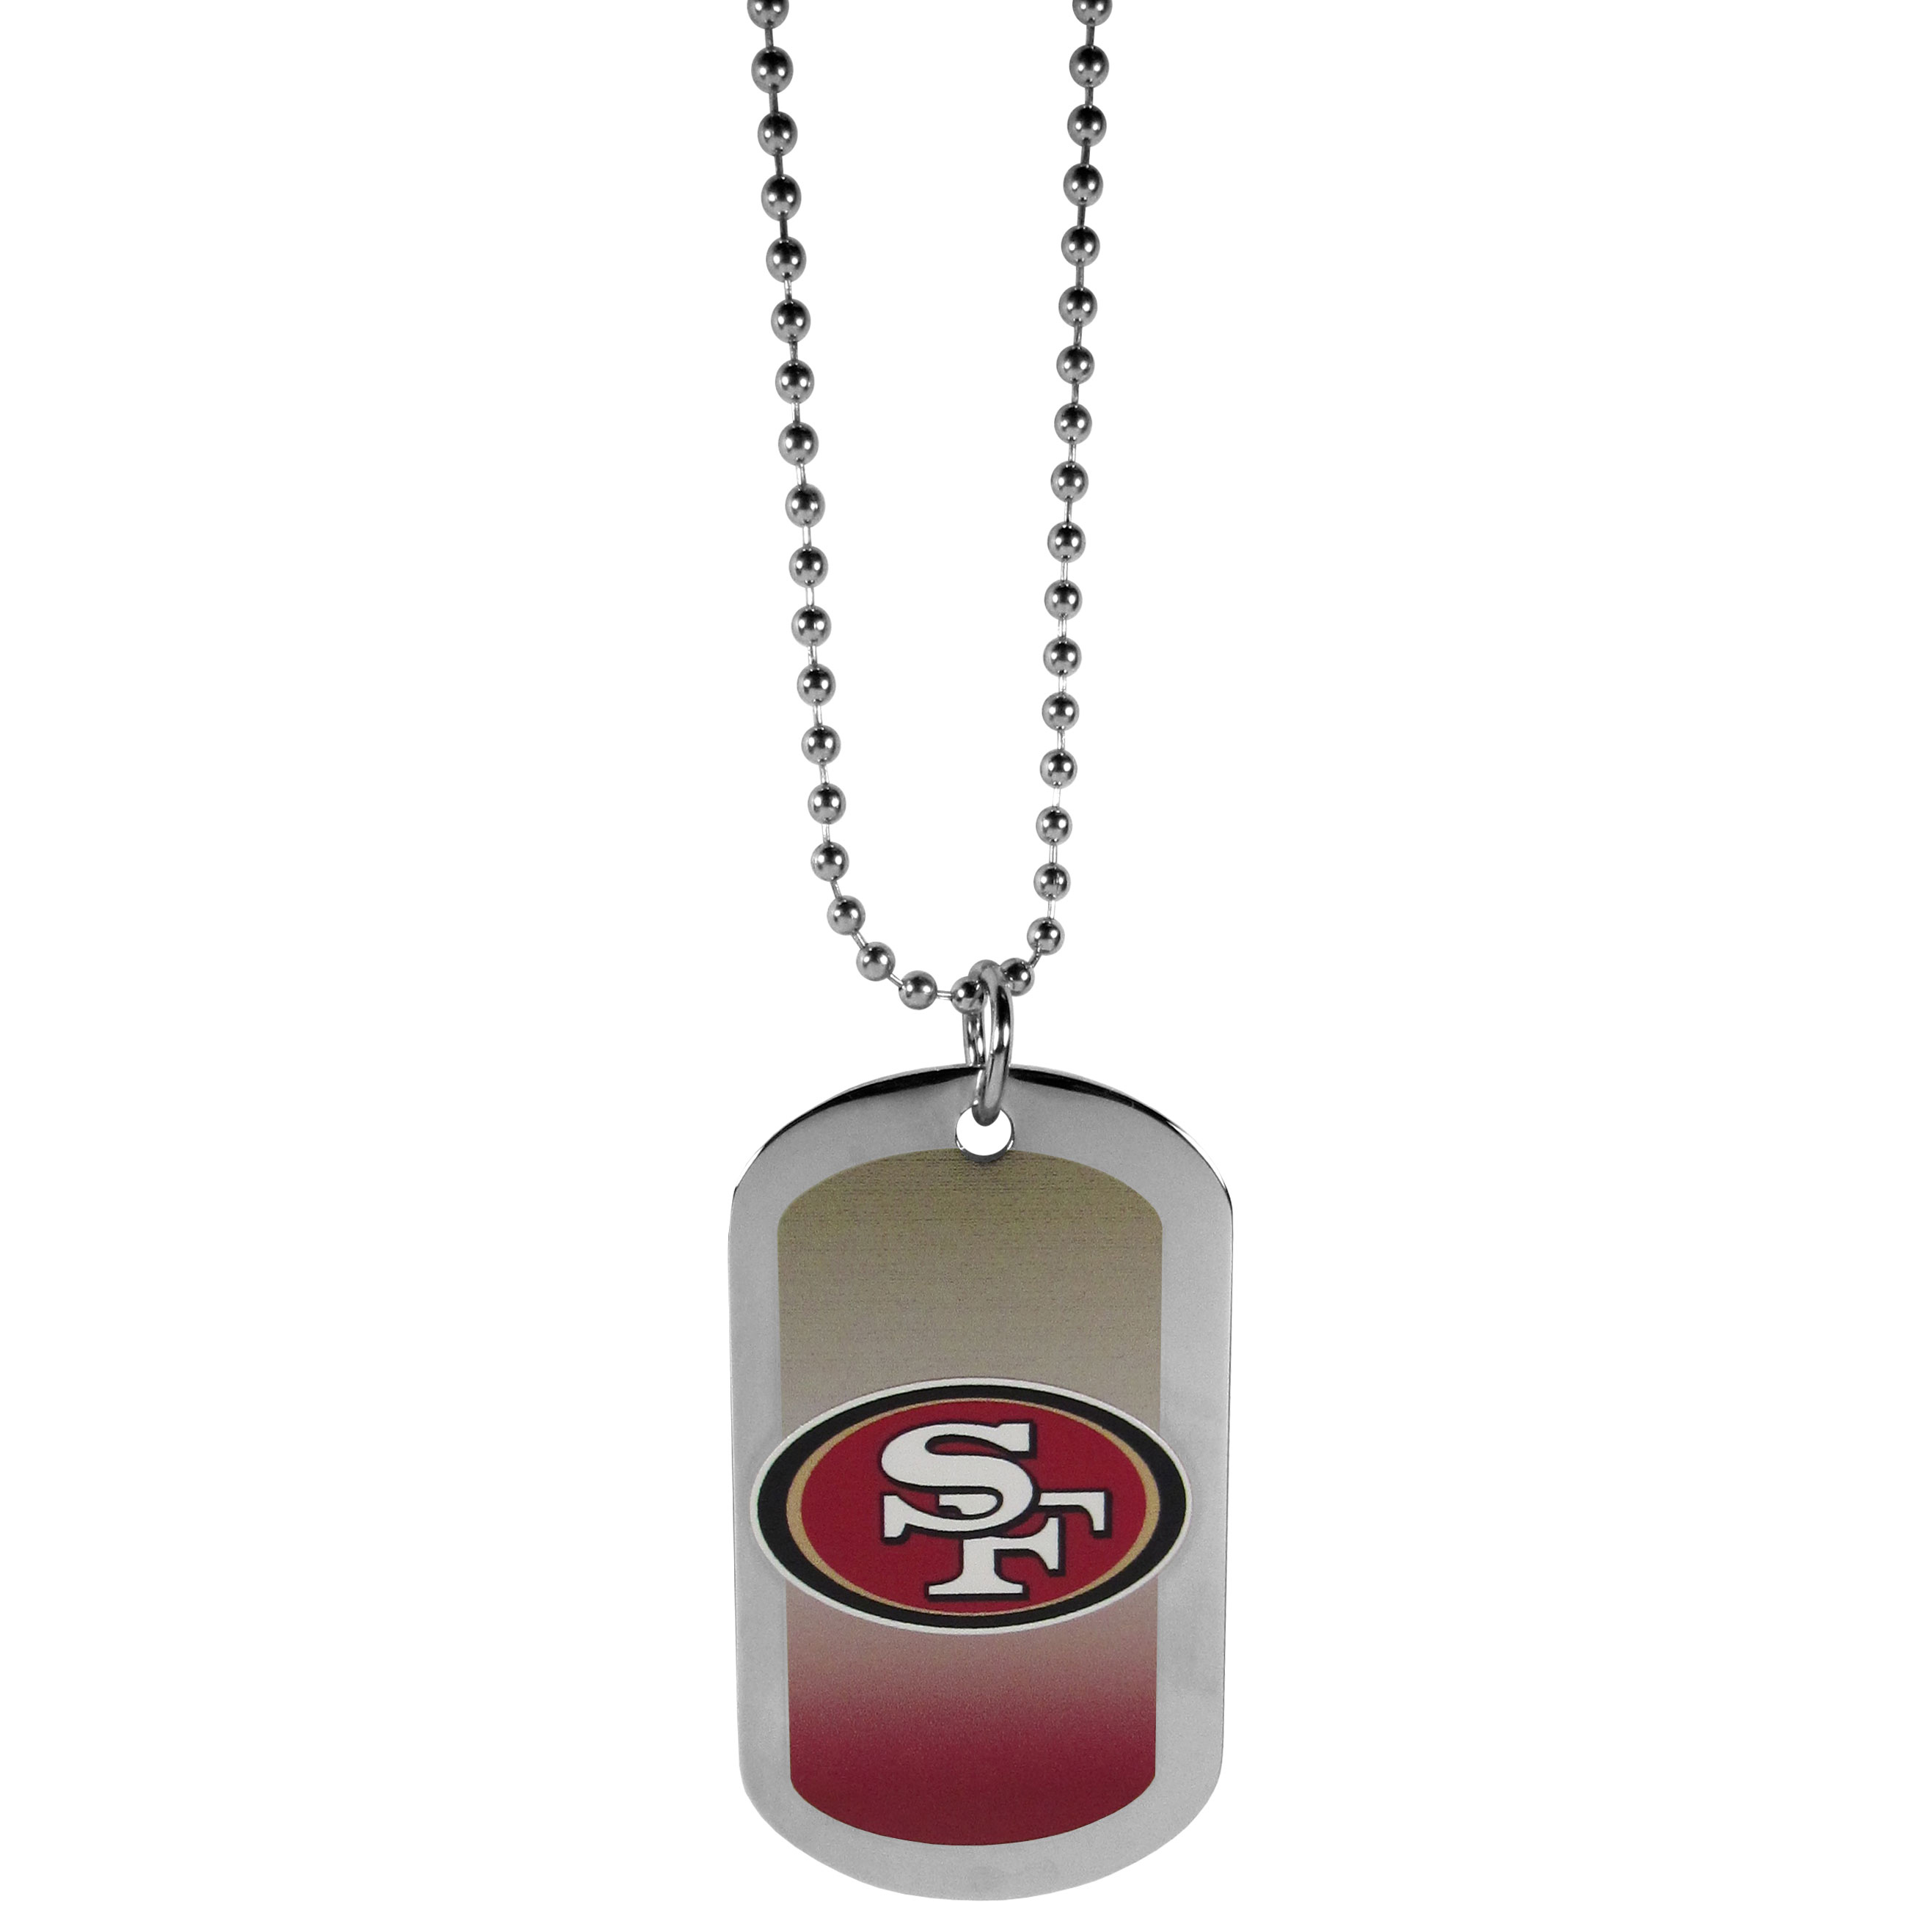 San Francisco 49ers Team Tag Necklace - Dog tag necklaces are a fashion statement that is here to stay. The sporty version of the classic tag features a gradient print in team colors featuring a full color team logo over a high polish tag to create a bold and sporty look. The tag comes on a 26 inch ball chain with a ball and joint clasp. Any San Francisco 49ers would be proud to wear this attractive fashion accessory.